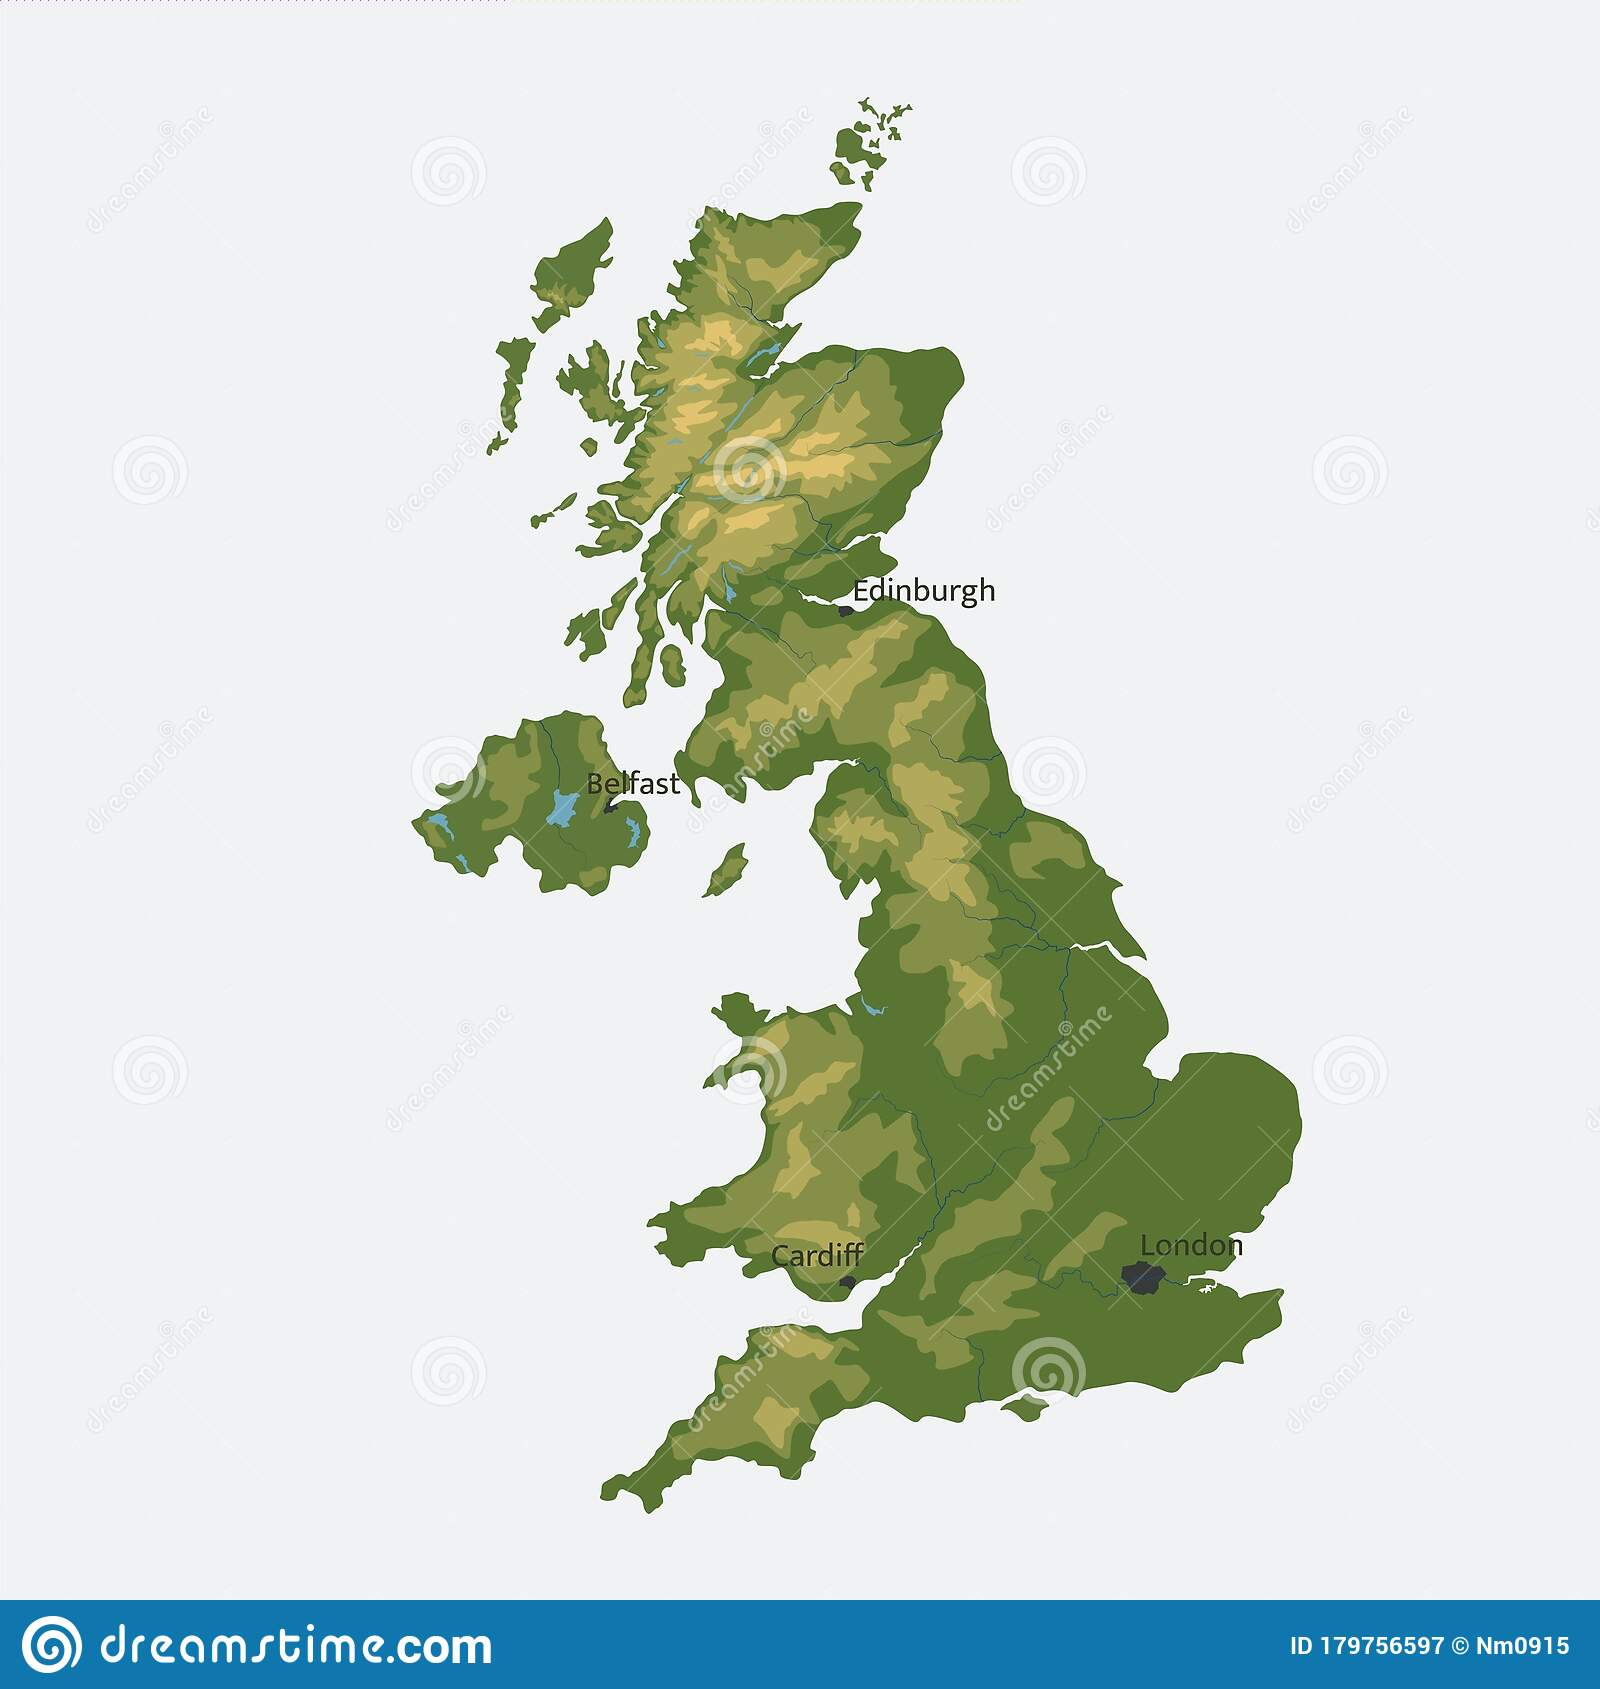 Picture of: United Kingdom Of Great Britain And Northern Ireland Vector Map Color Physical Map Stock Vector Illustration Of Illustrations Country 179756597